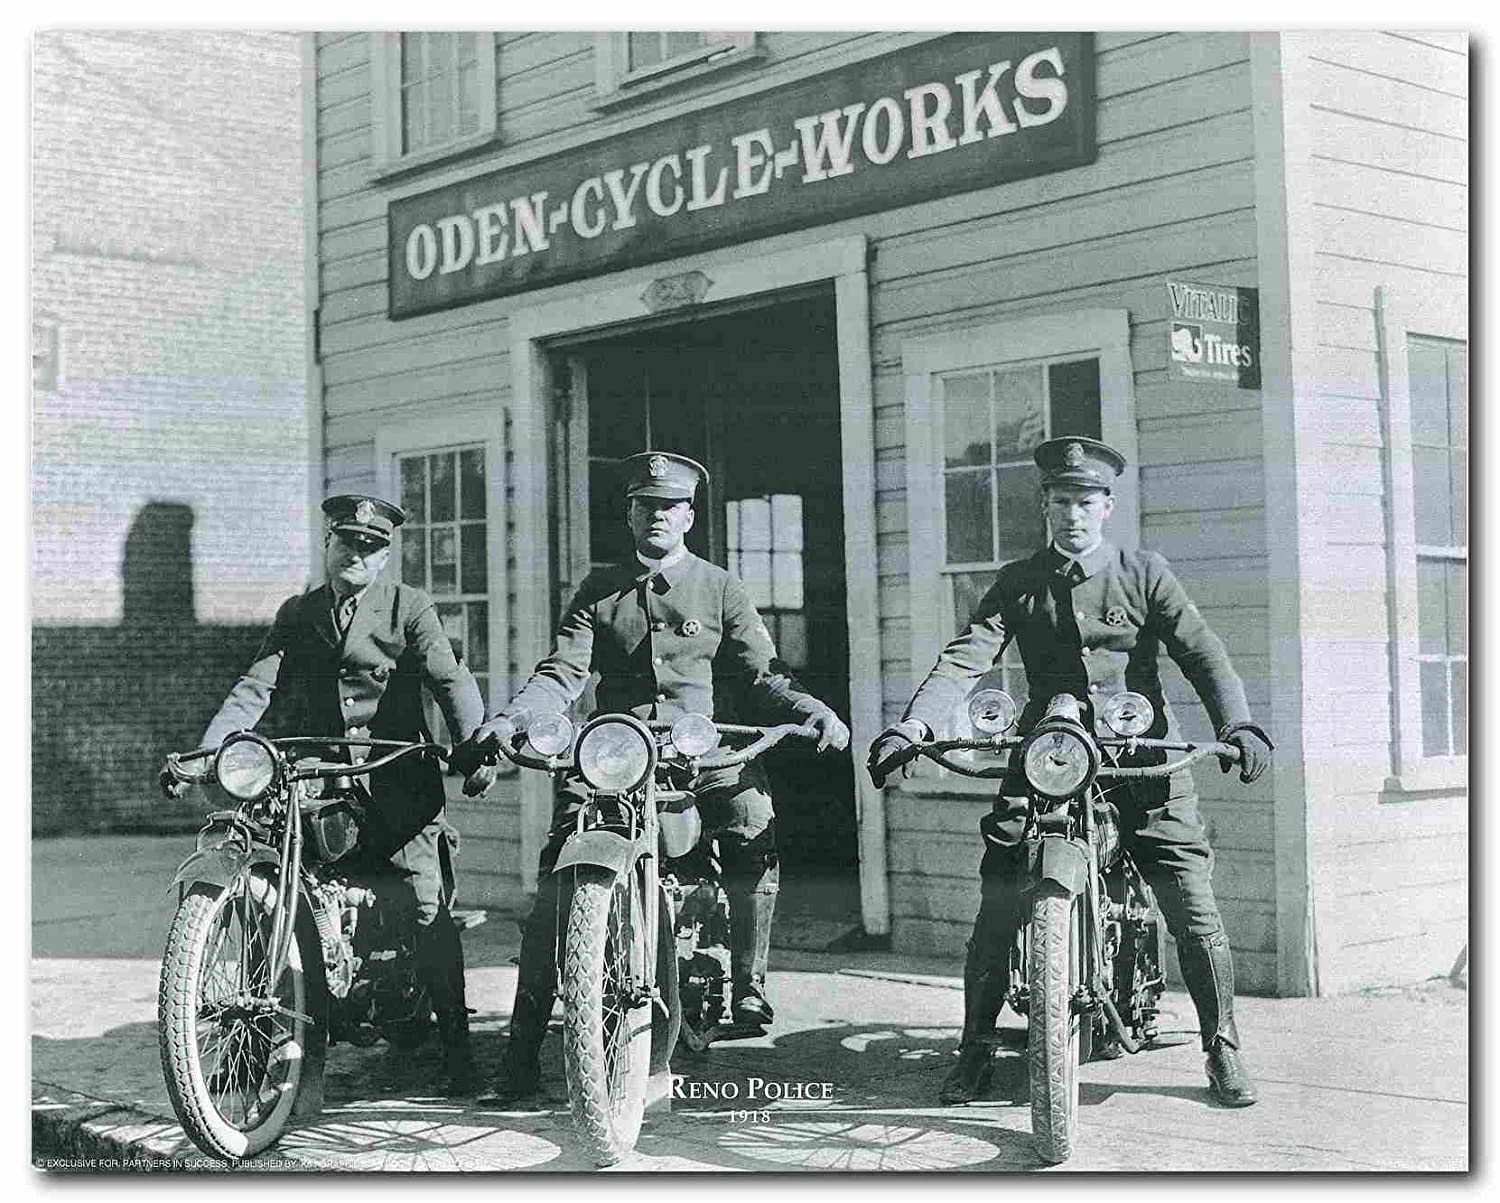 Wall Decor Vintage Reno Police Motorcycle Oden Cycle Works Art Print Poster (16x20)